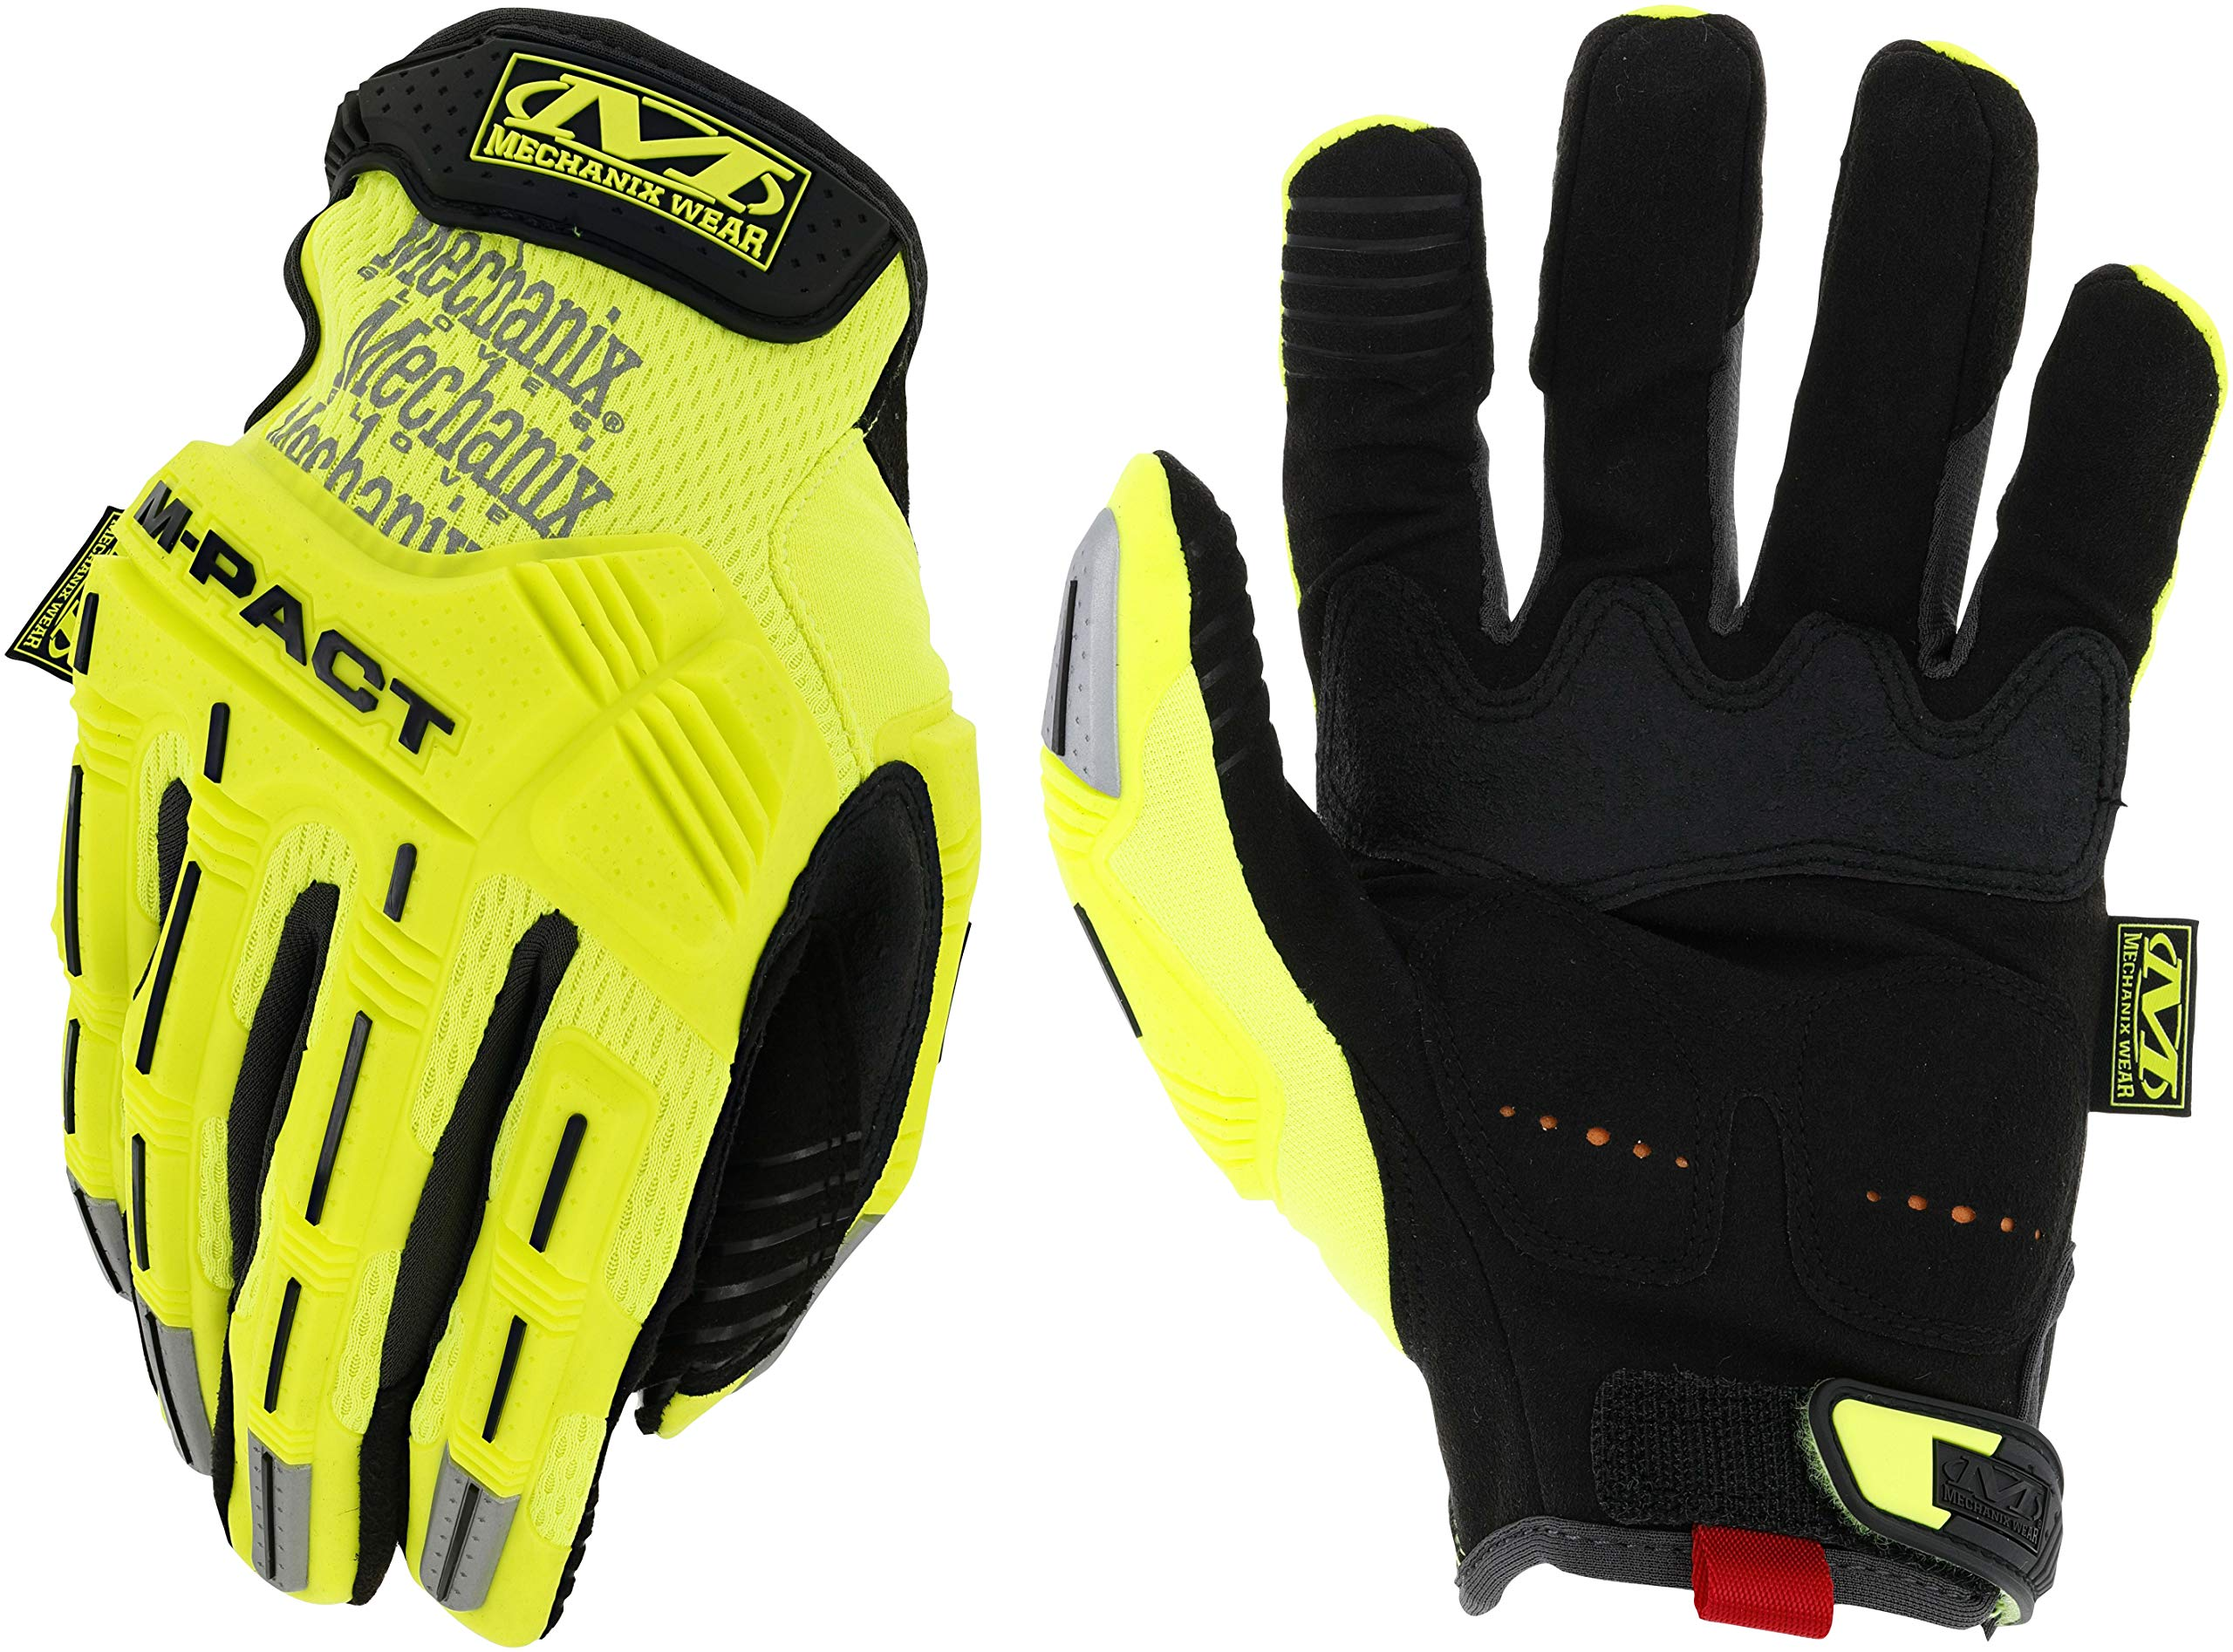 MECHANIX WEAR SMP-91-012 Impact Gloves, 2XL, Hi-Vis Yellow, PR by Mechanix Wear